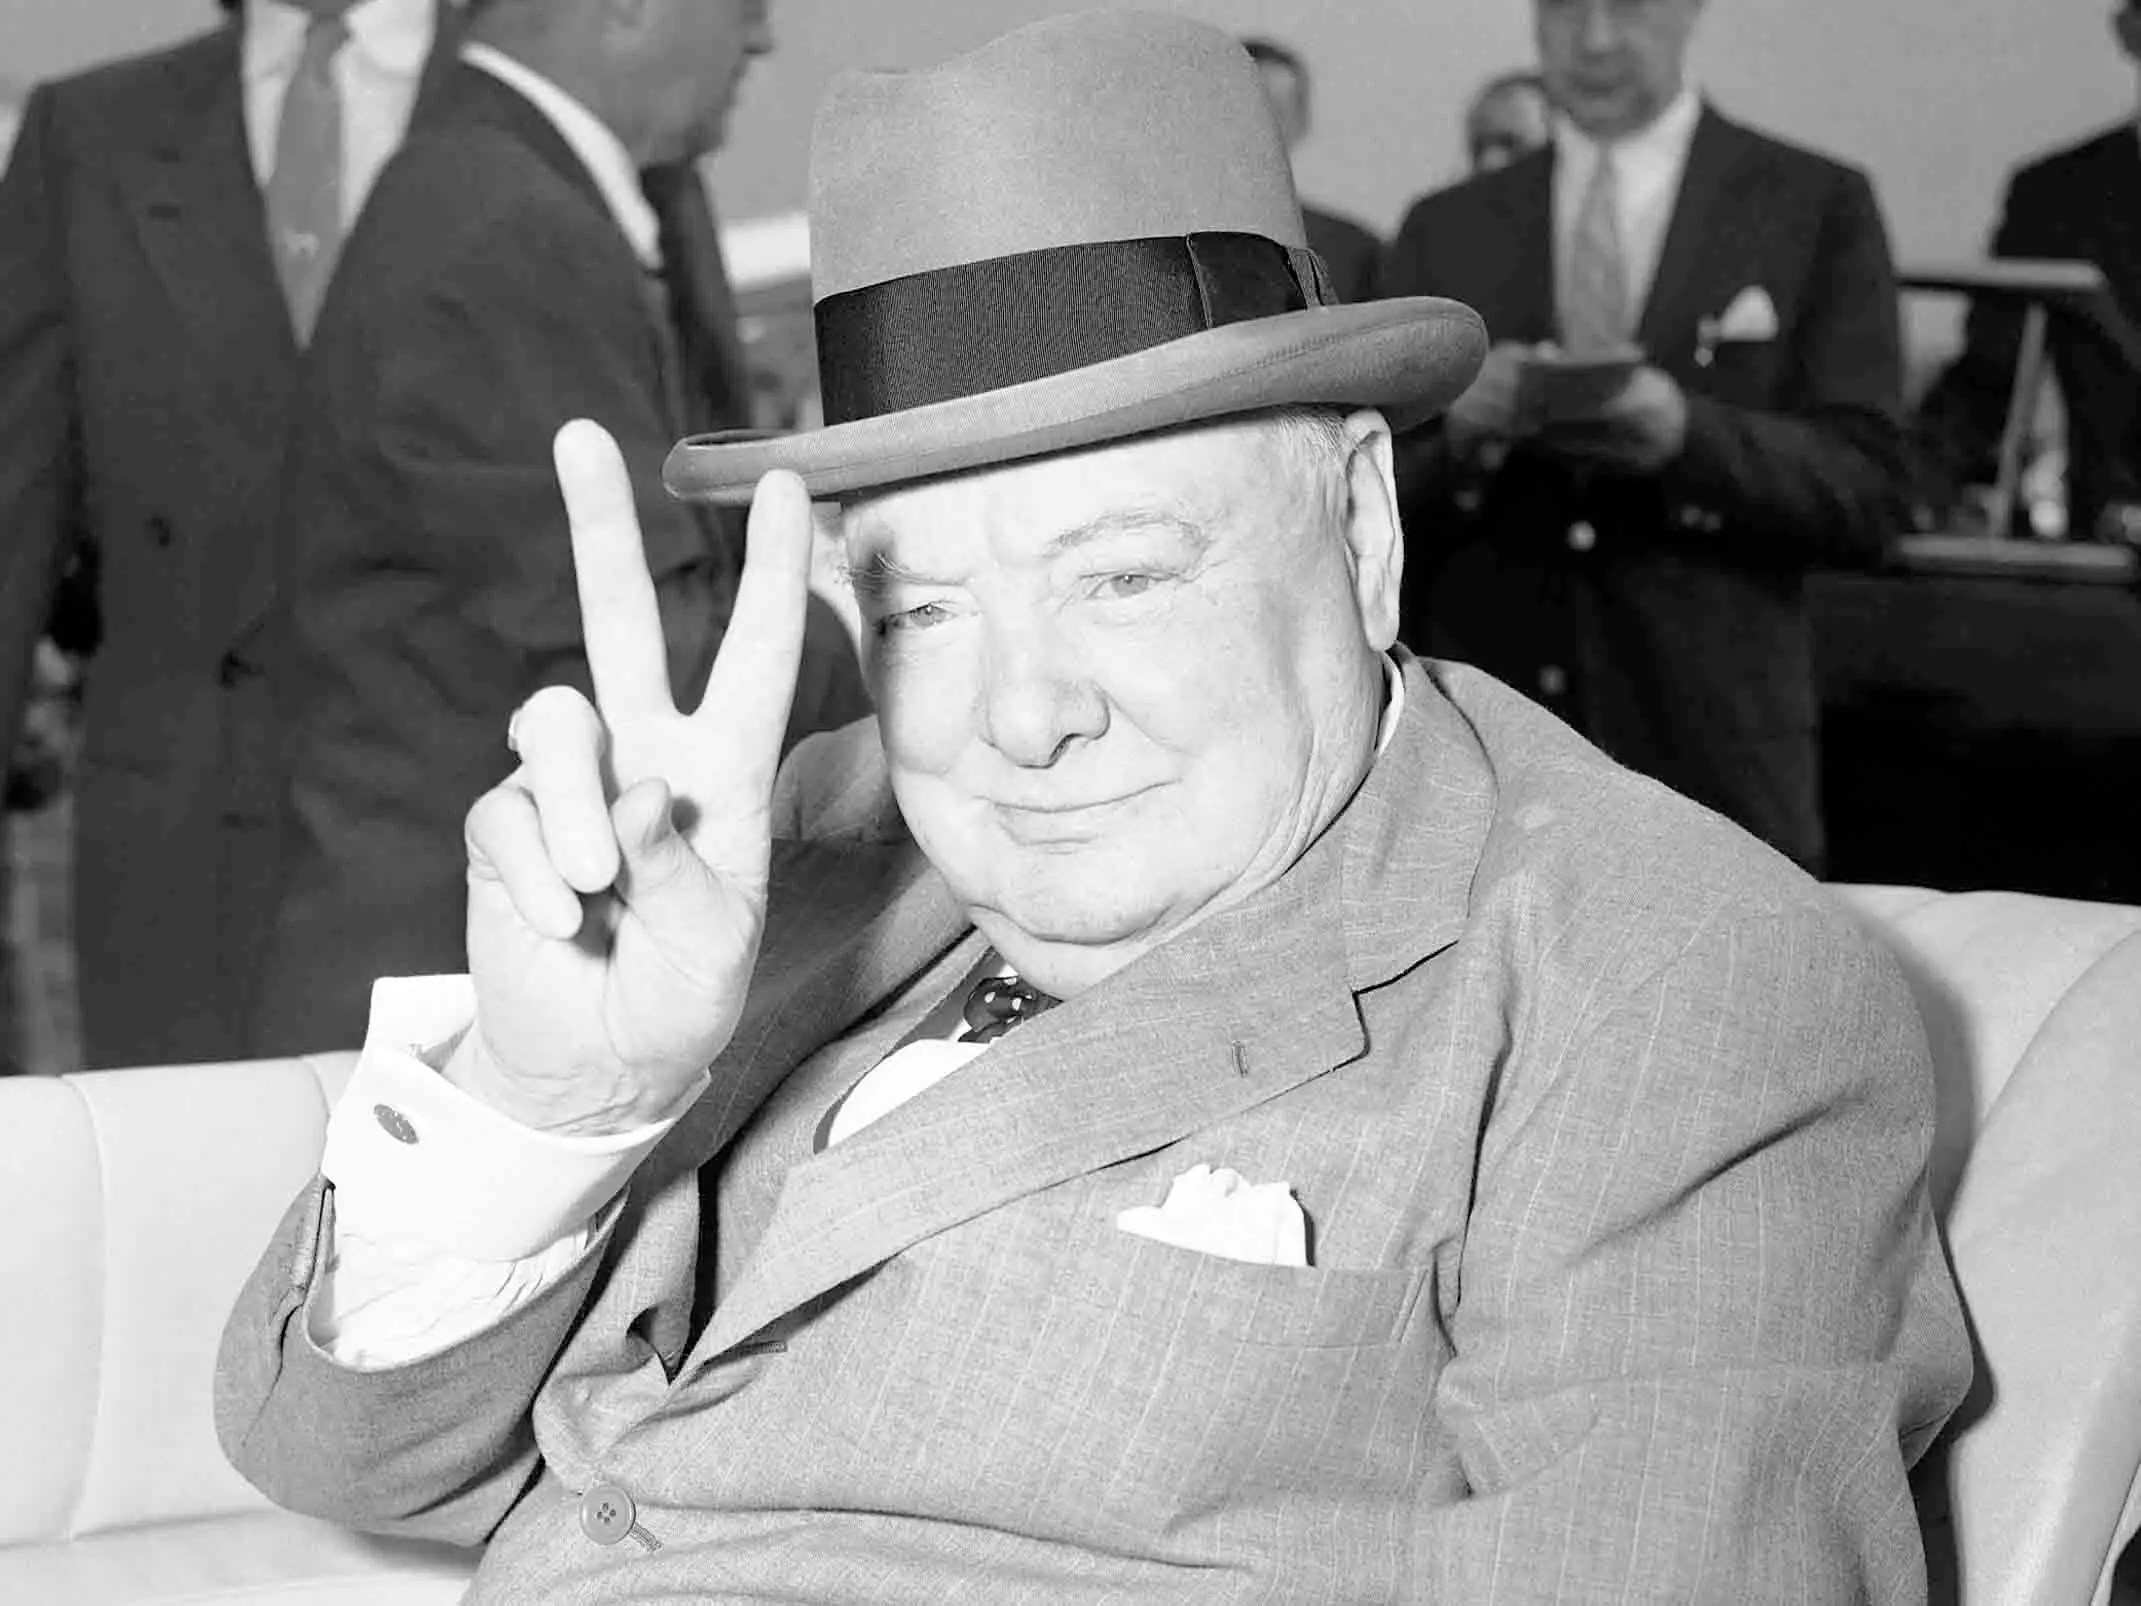 Winston Churchill failed the sixth grade. He was defeated in every public office role he ran for.